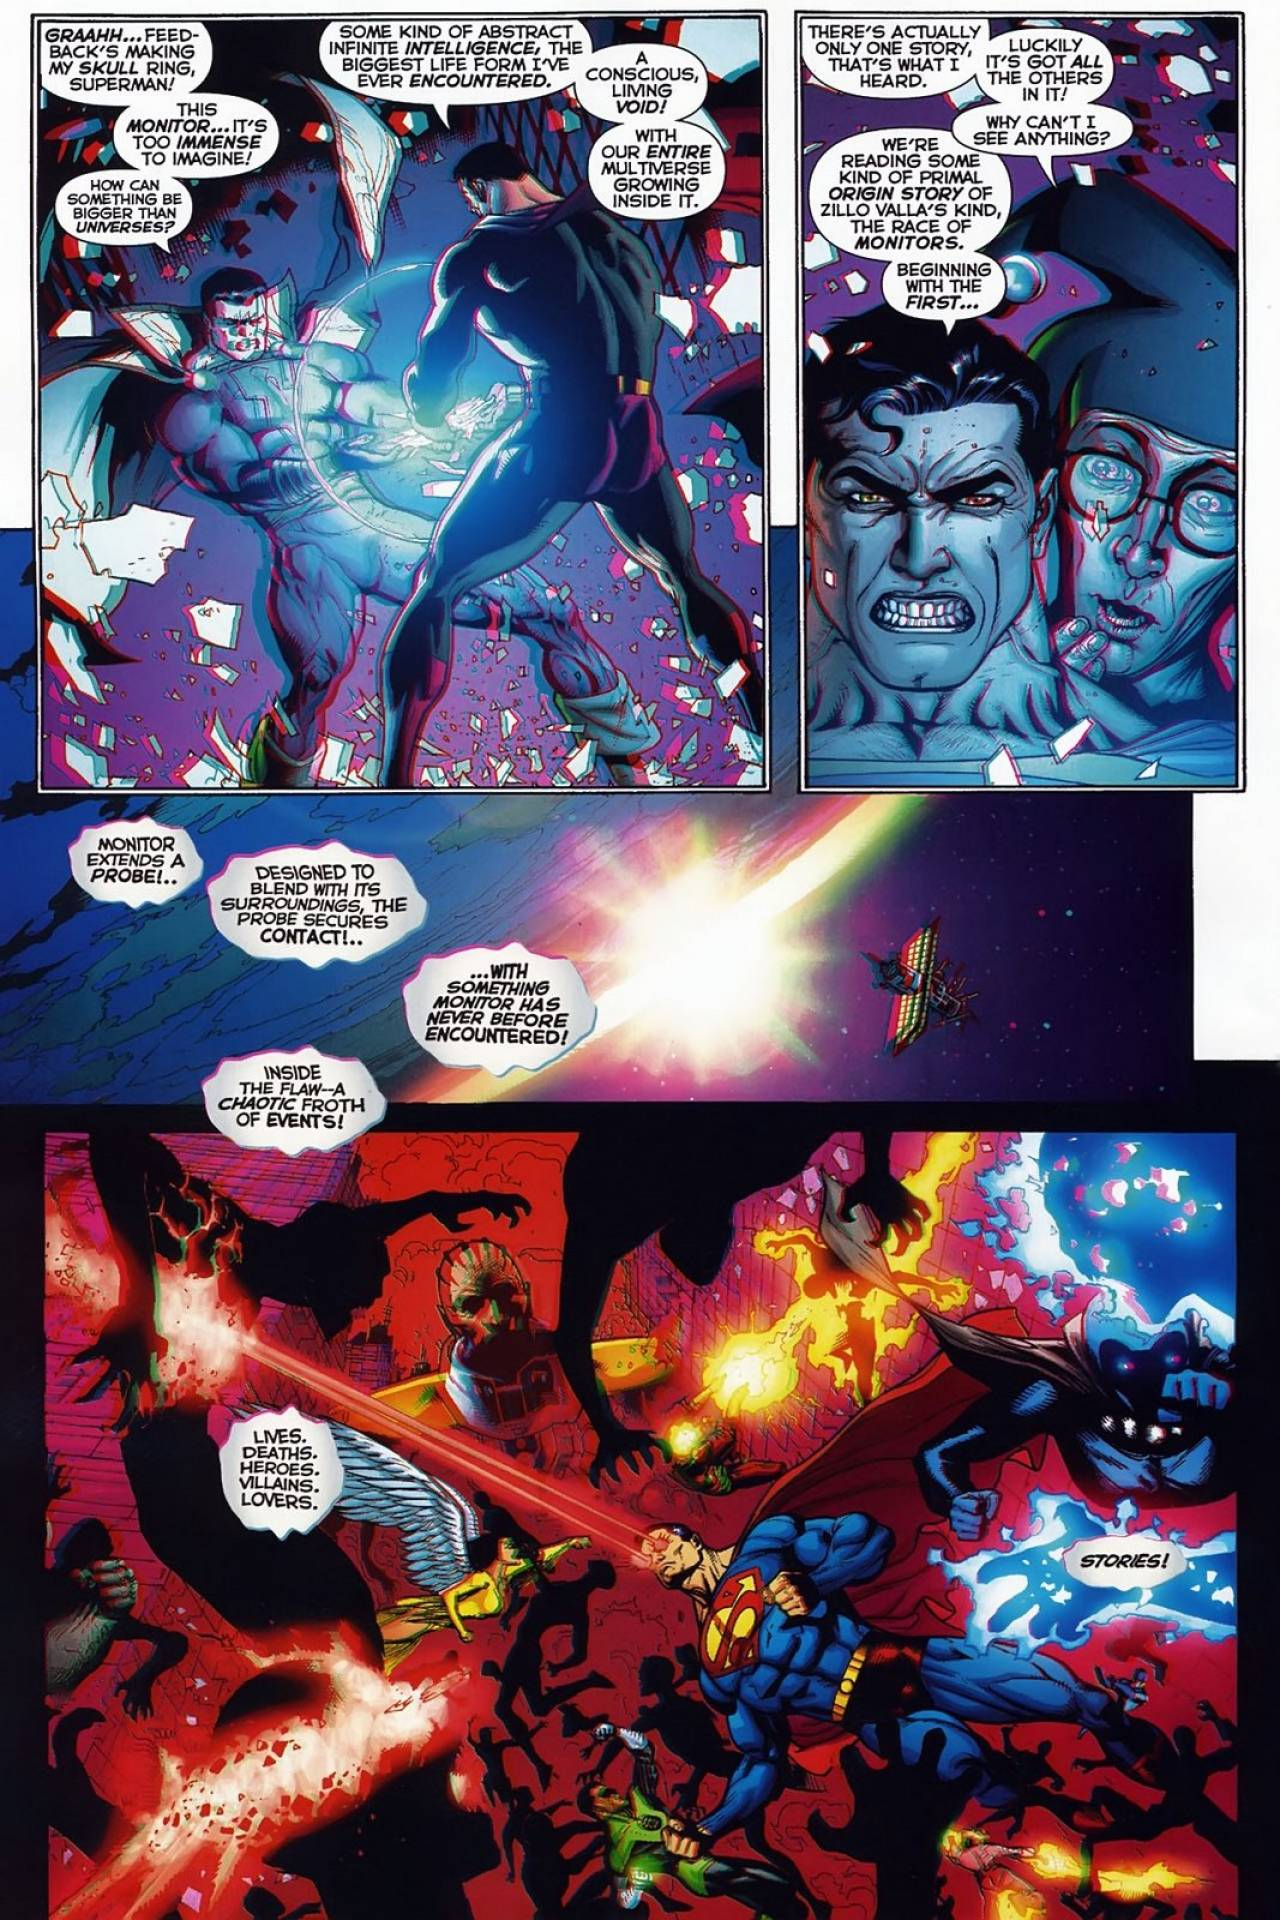 In 'Final Crisis: Superman Beyond' (2008) #1, Captain Marvel helped by Superman lifts the Book of Limbo, a book with infinite pages.